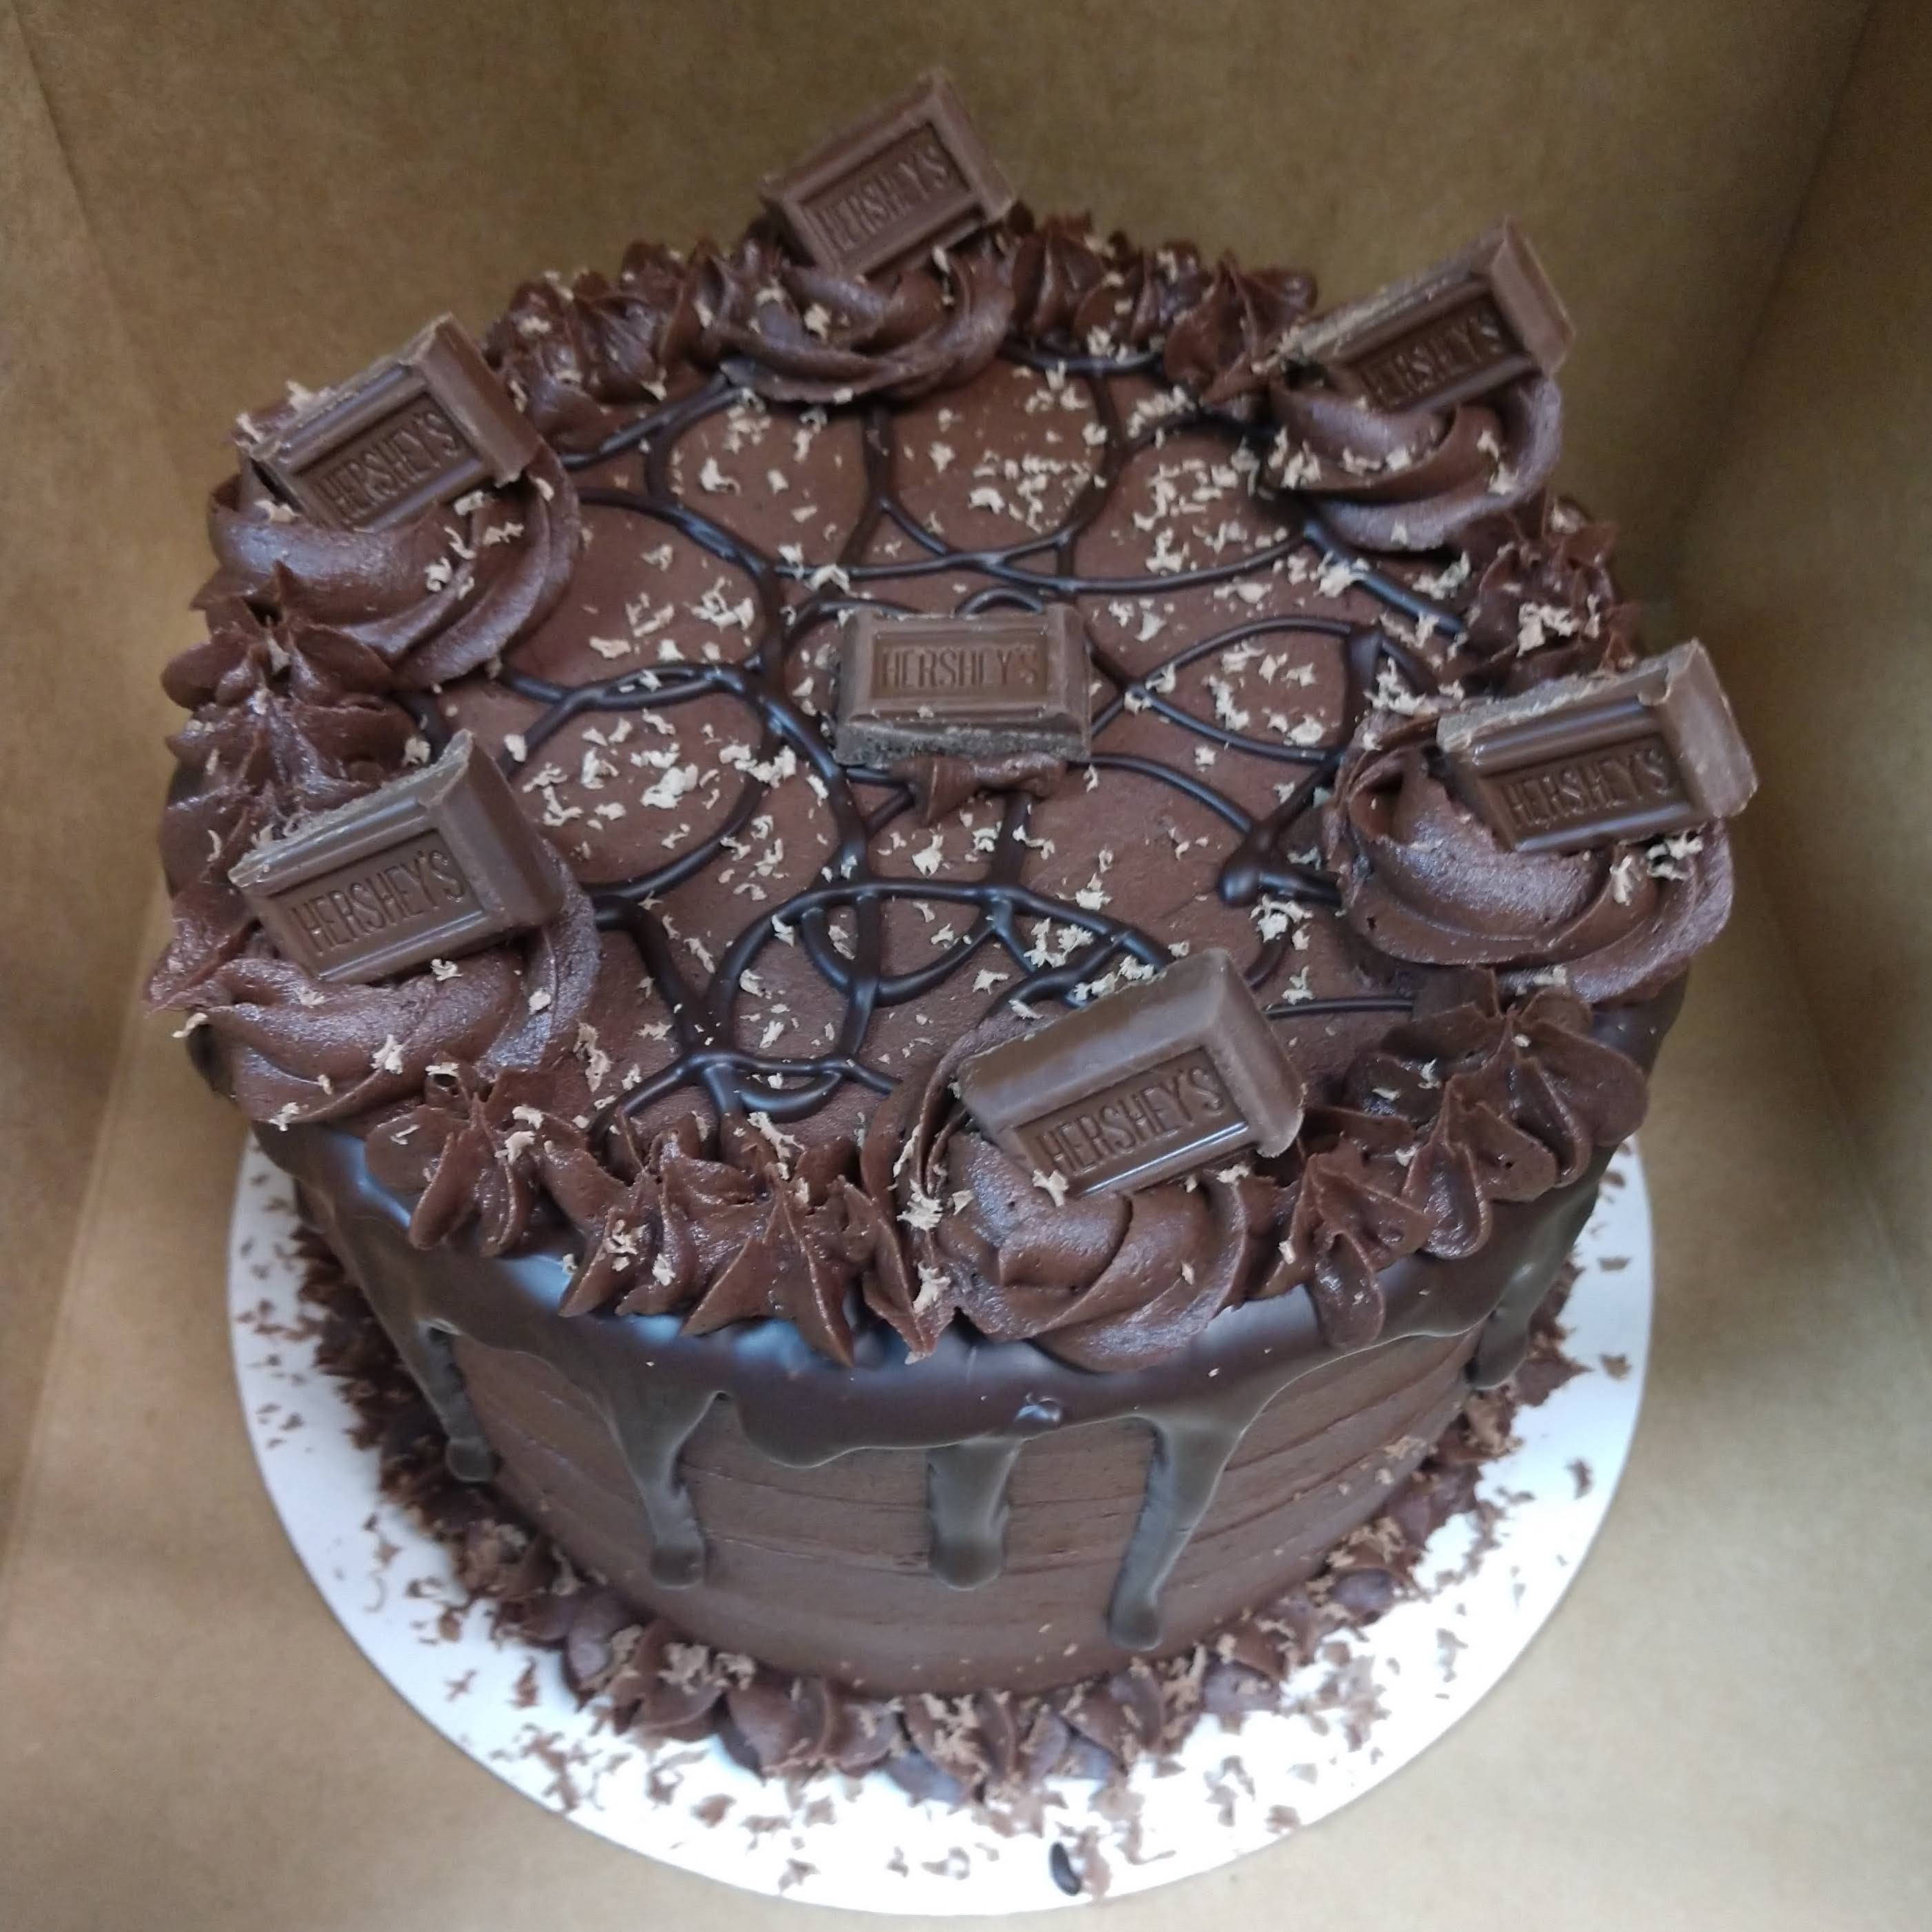 6in cake with choc. indulgence frosting, choc. drizzle and hershey's pieces